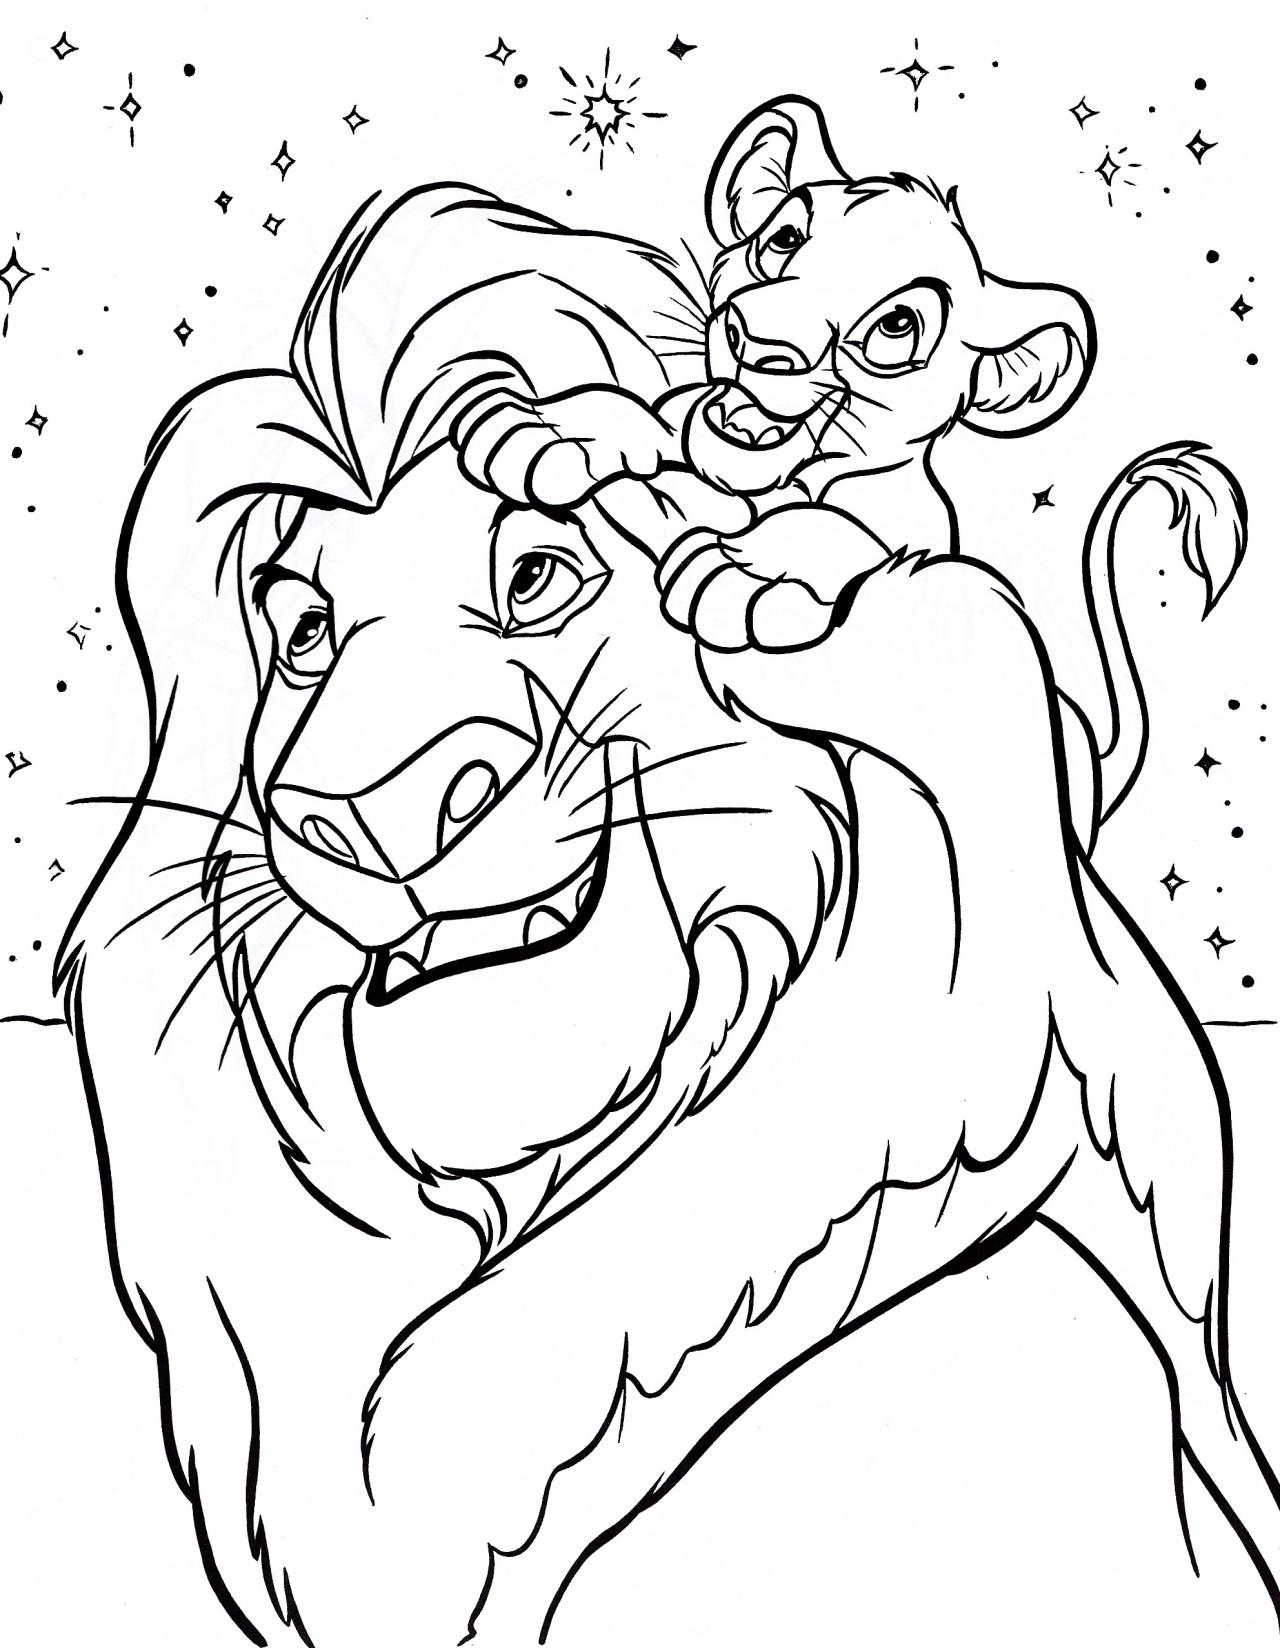 Mufasa clipart coloring page #13